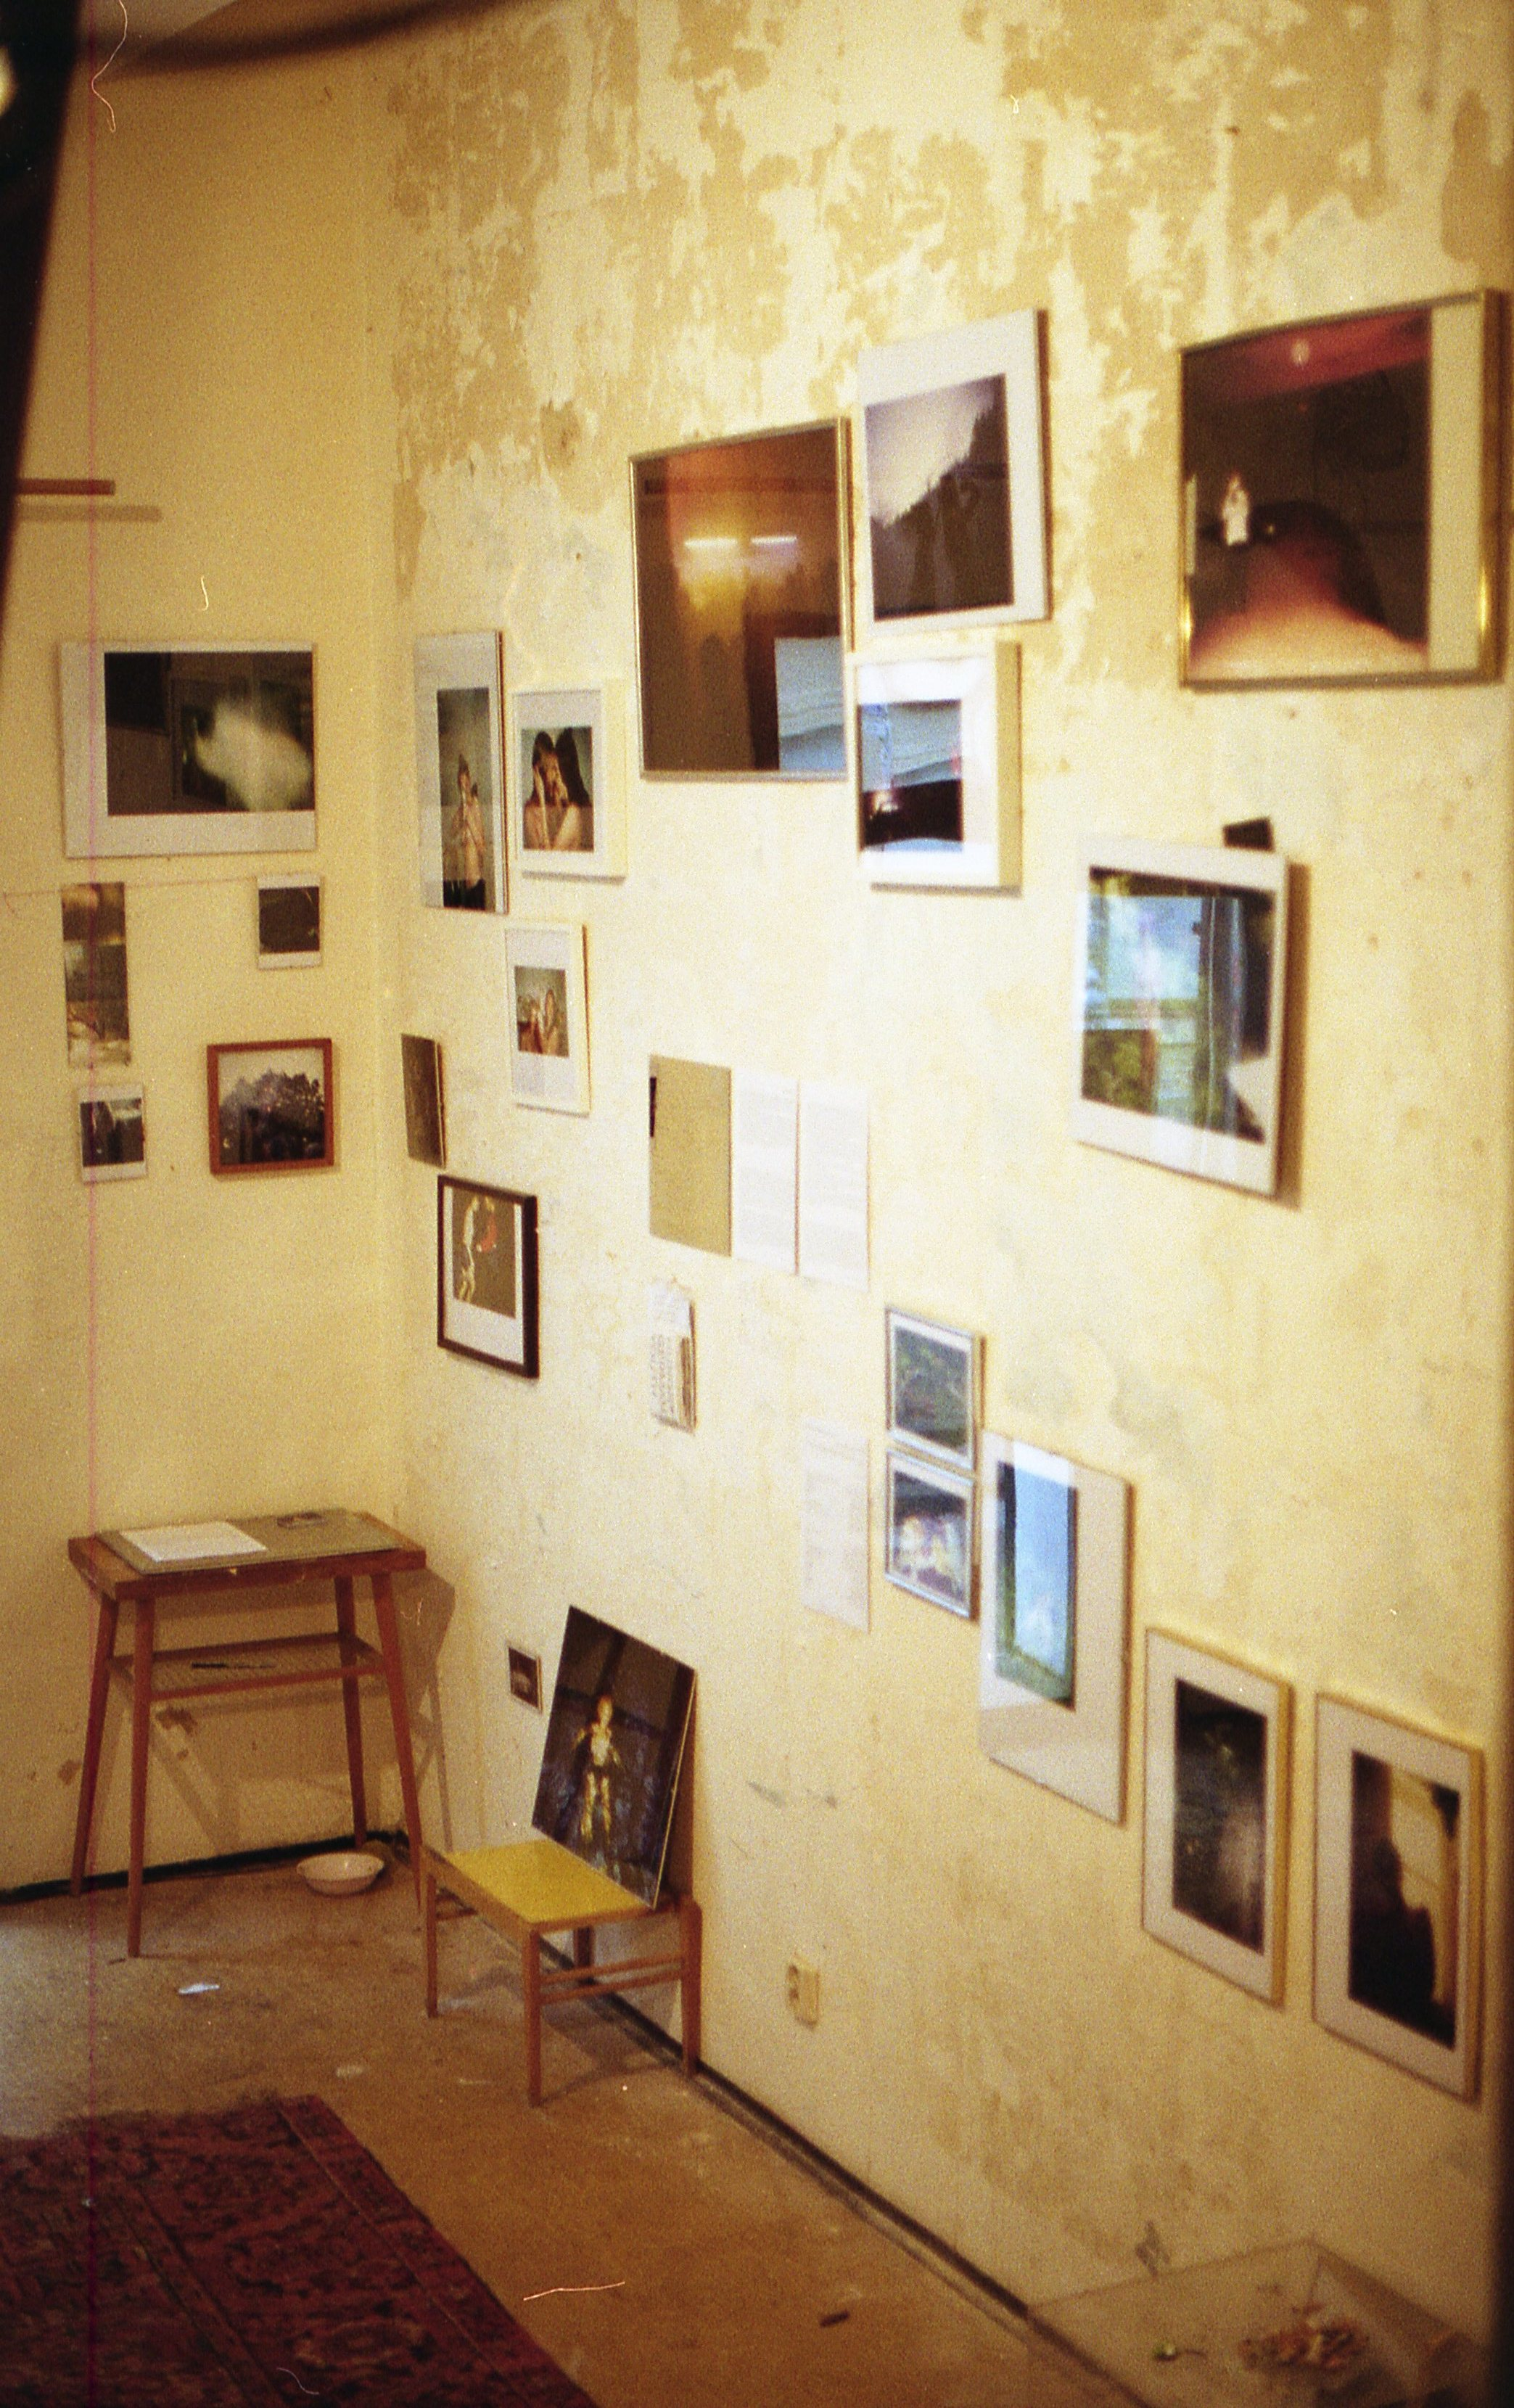 space reflecting in the photographs on the wall.jpg